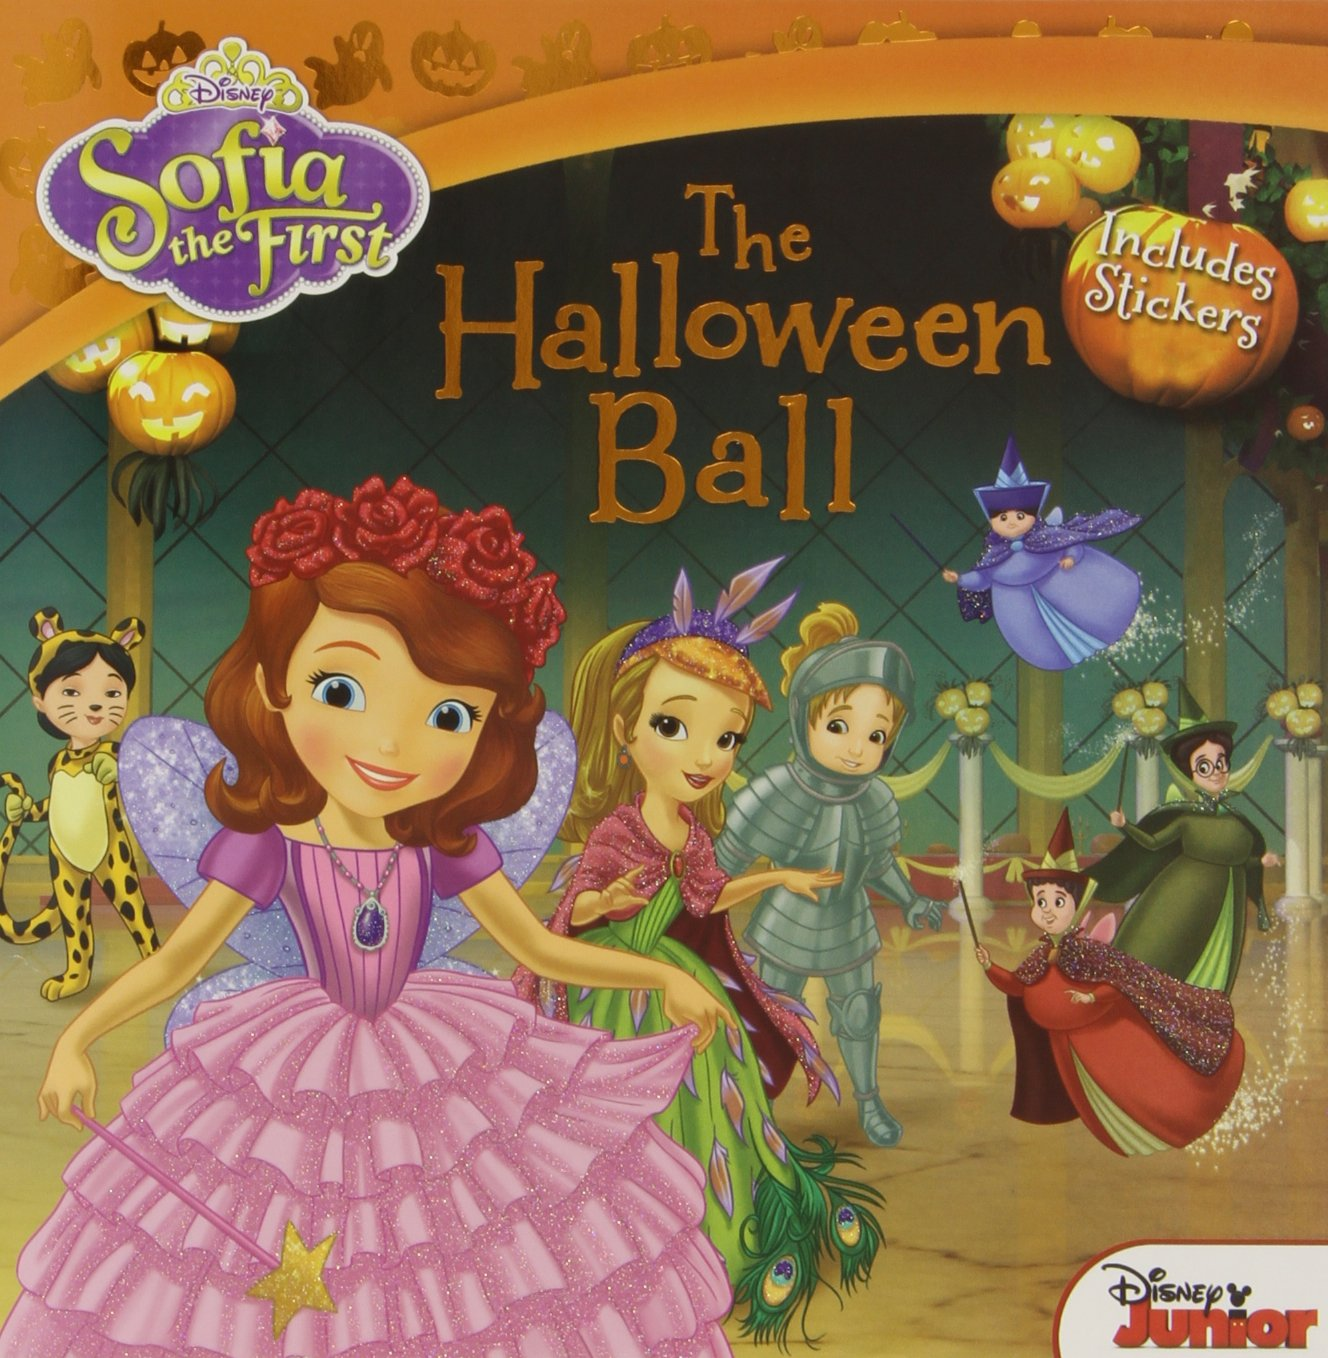 sofia the first the halloween ball includes stickers disney book group lisa ann marsoli disney storybook art team 9781423171447 amazoncom books